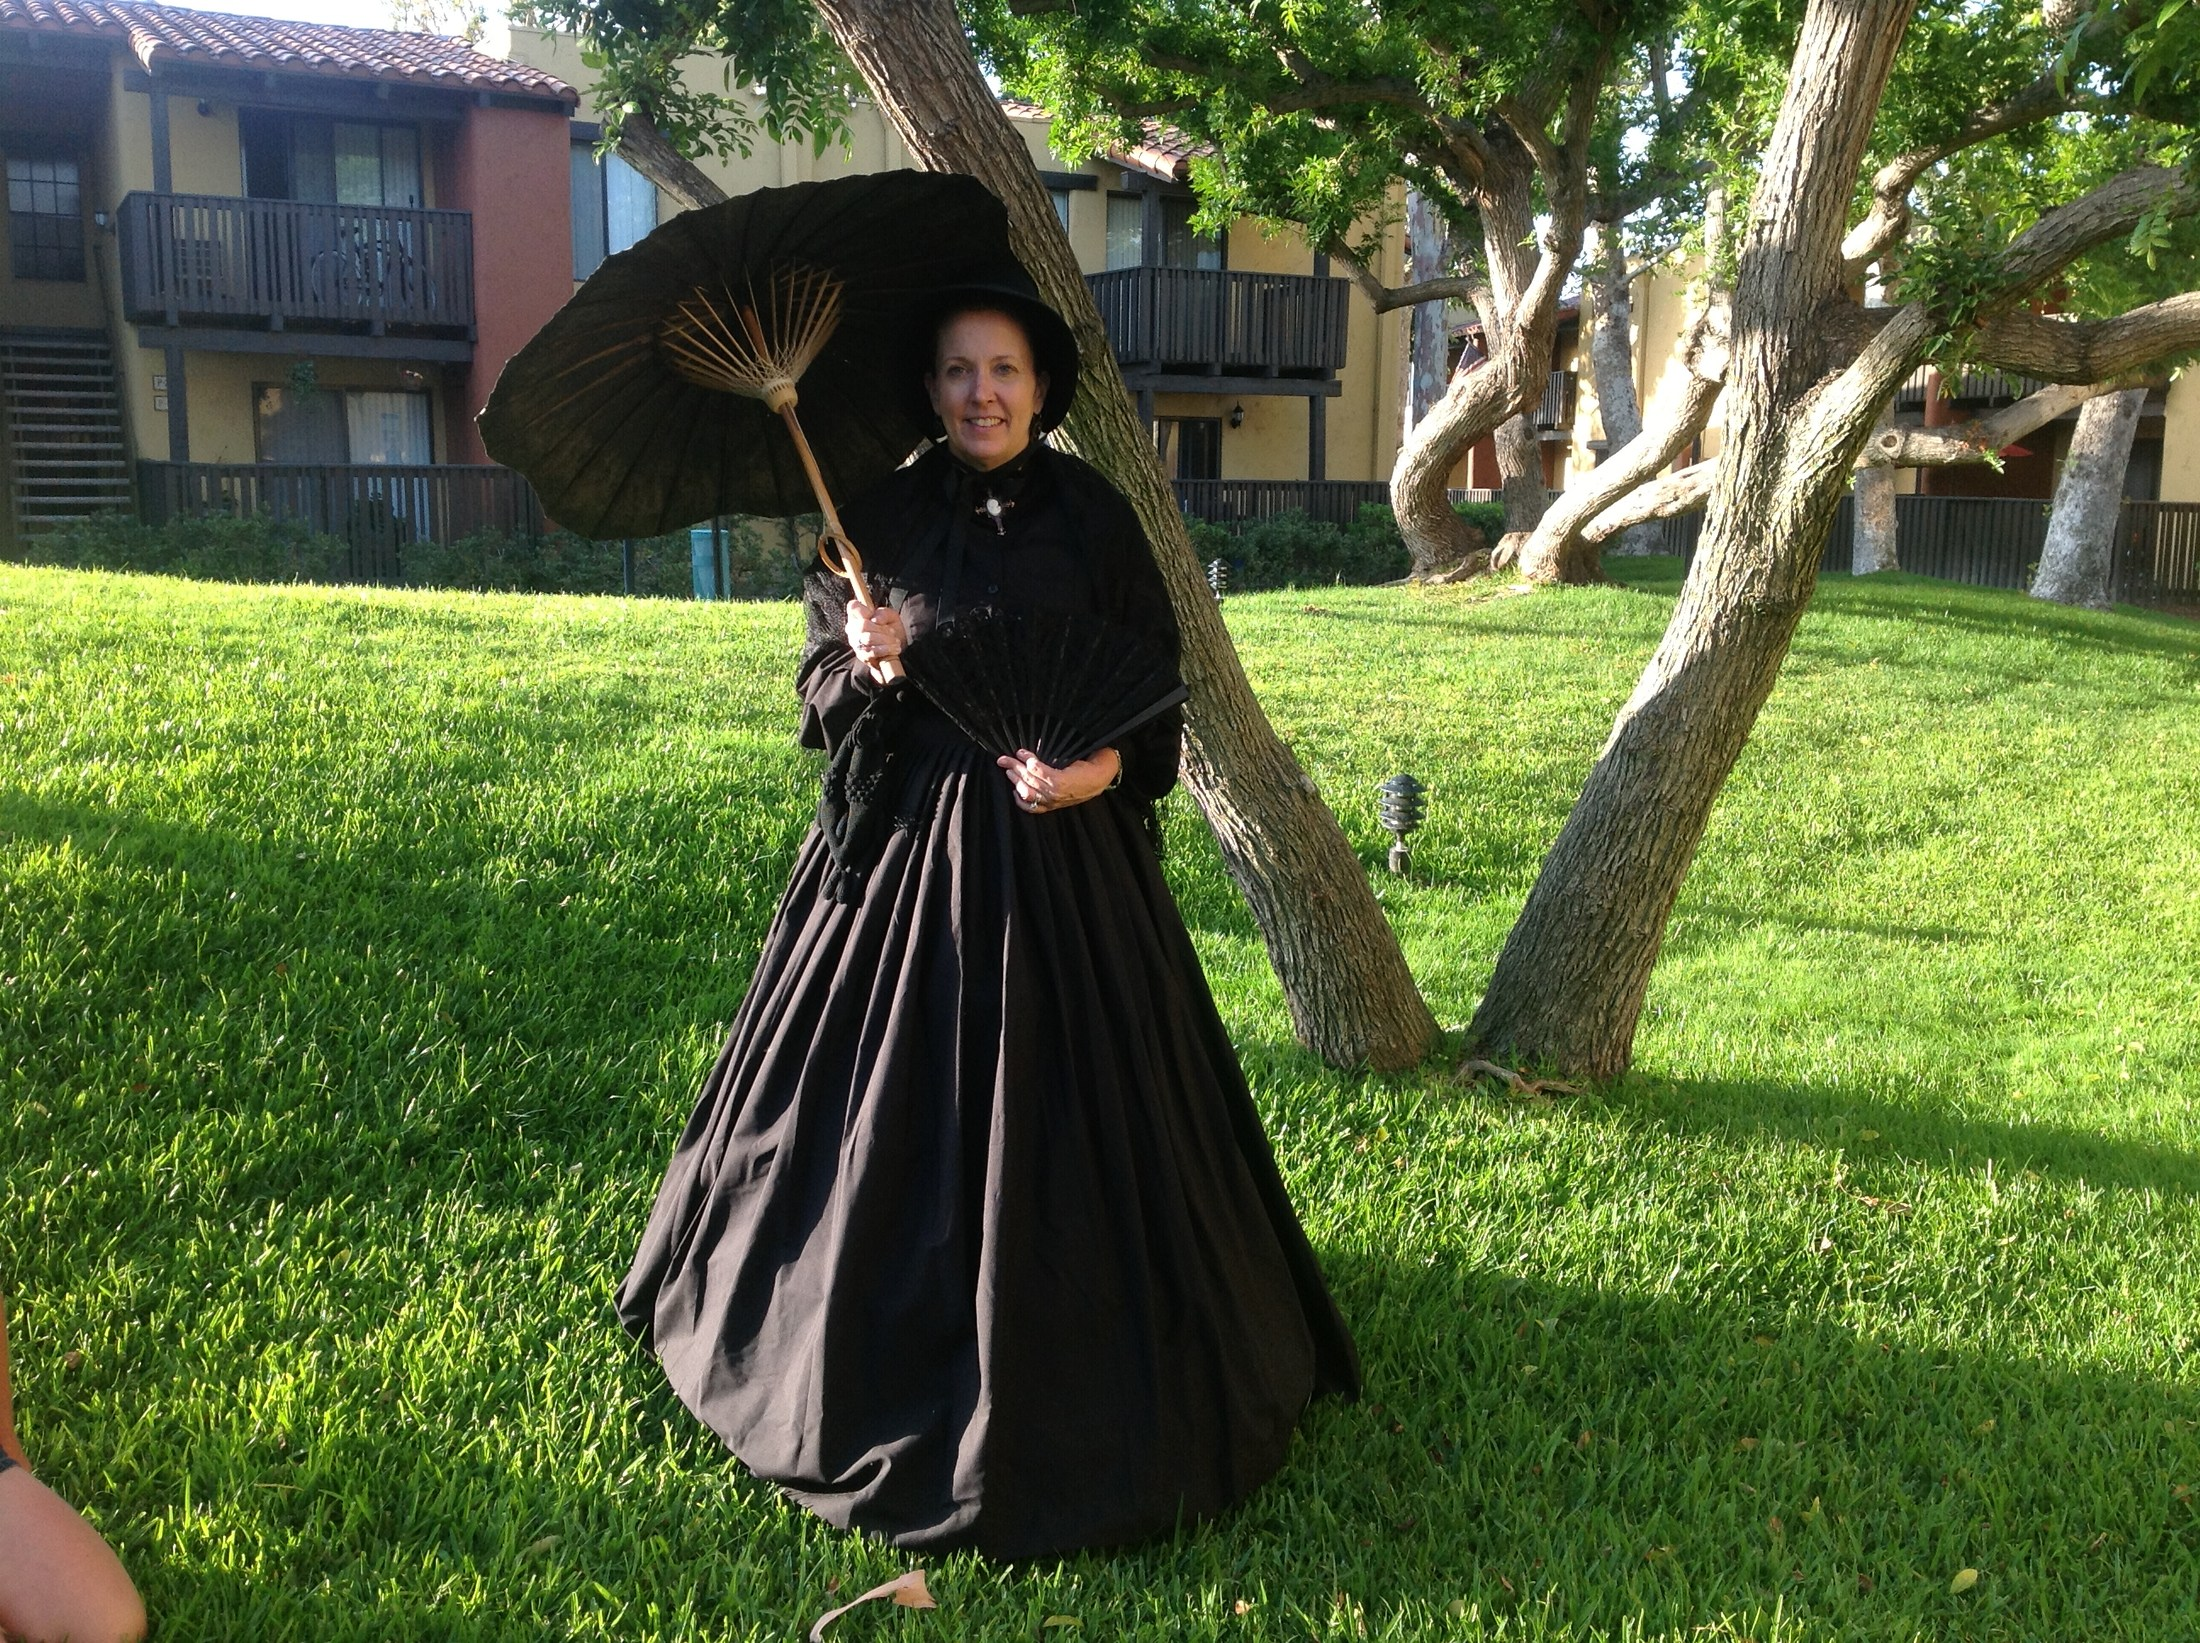 Mrs. Schippert Civil War Reenactment Costume